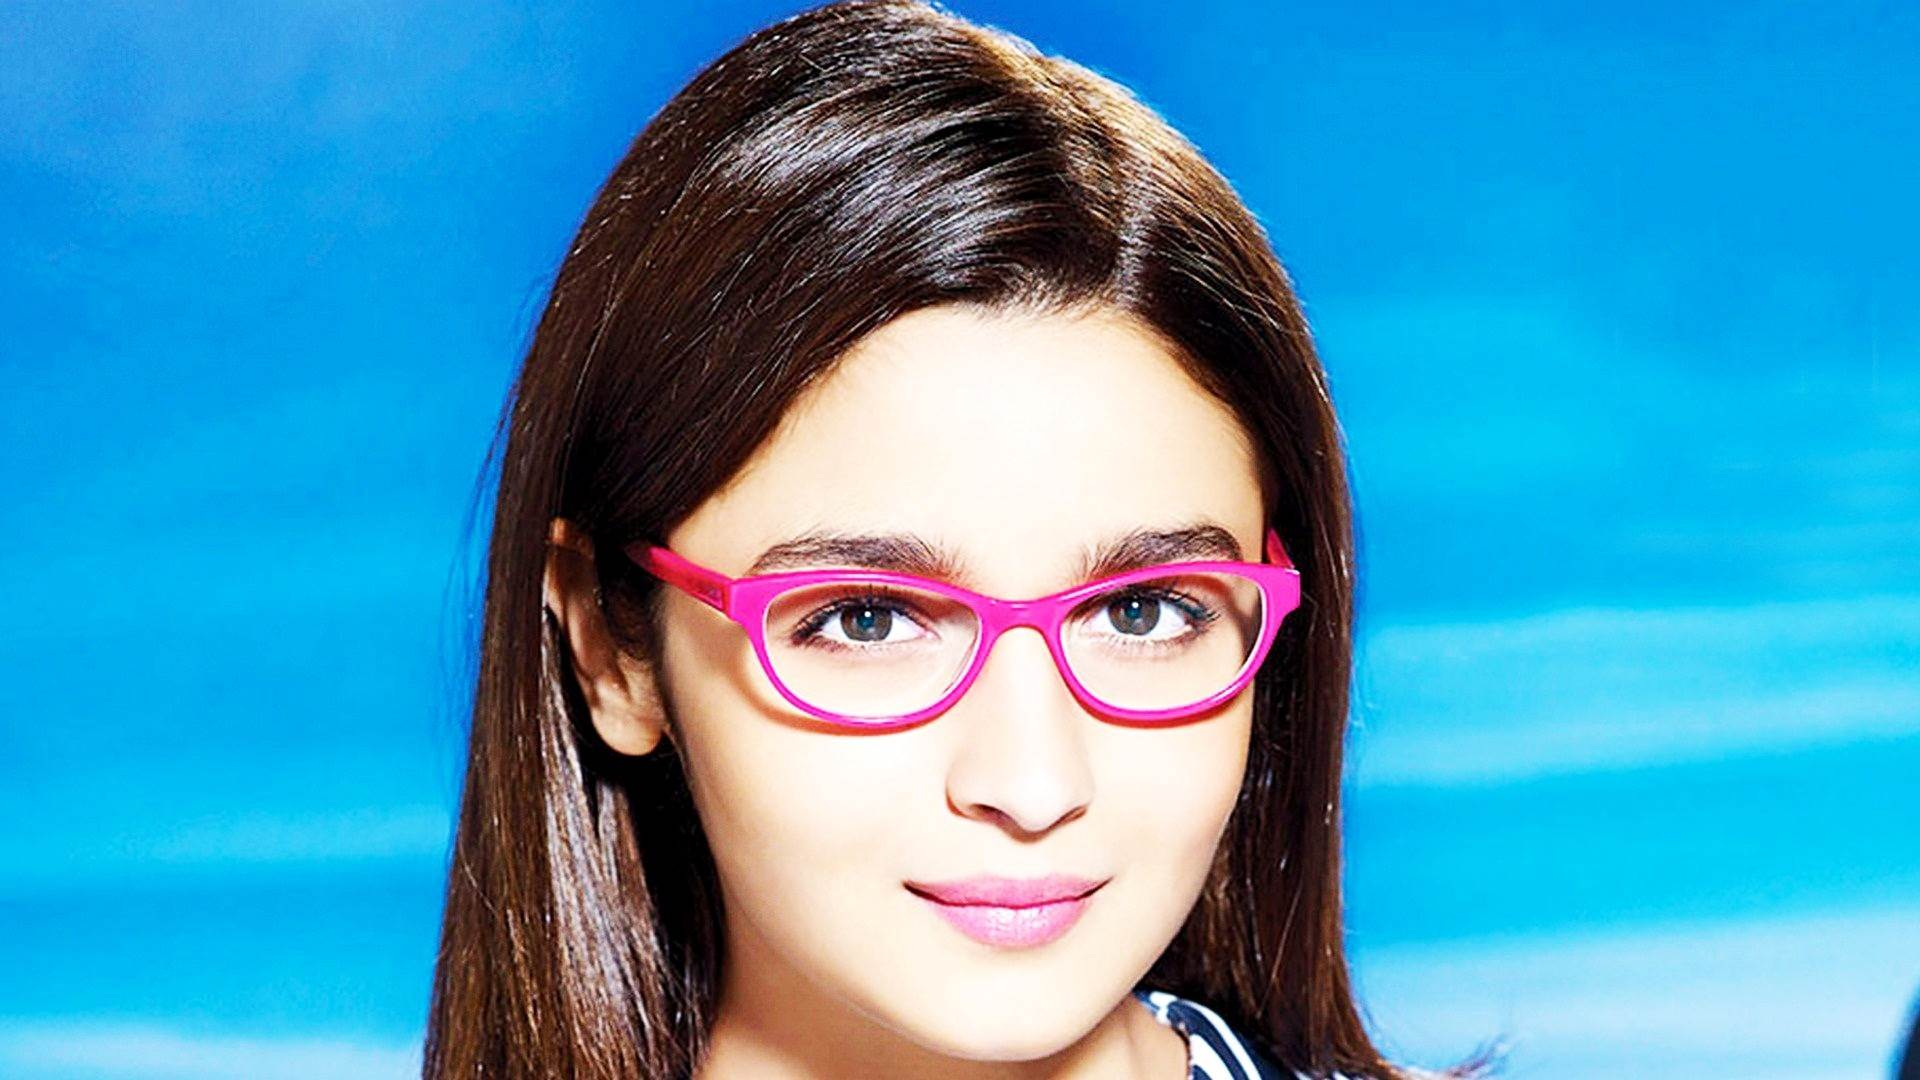 Alia Bhatt Wallpapers  Latest Hd Images from New Movies 1920x1080